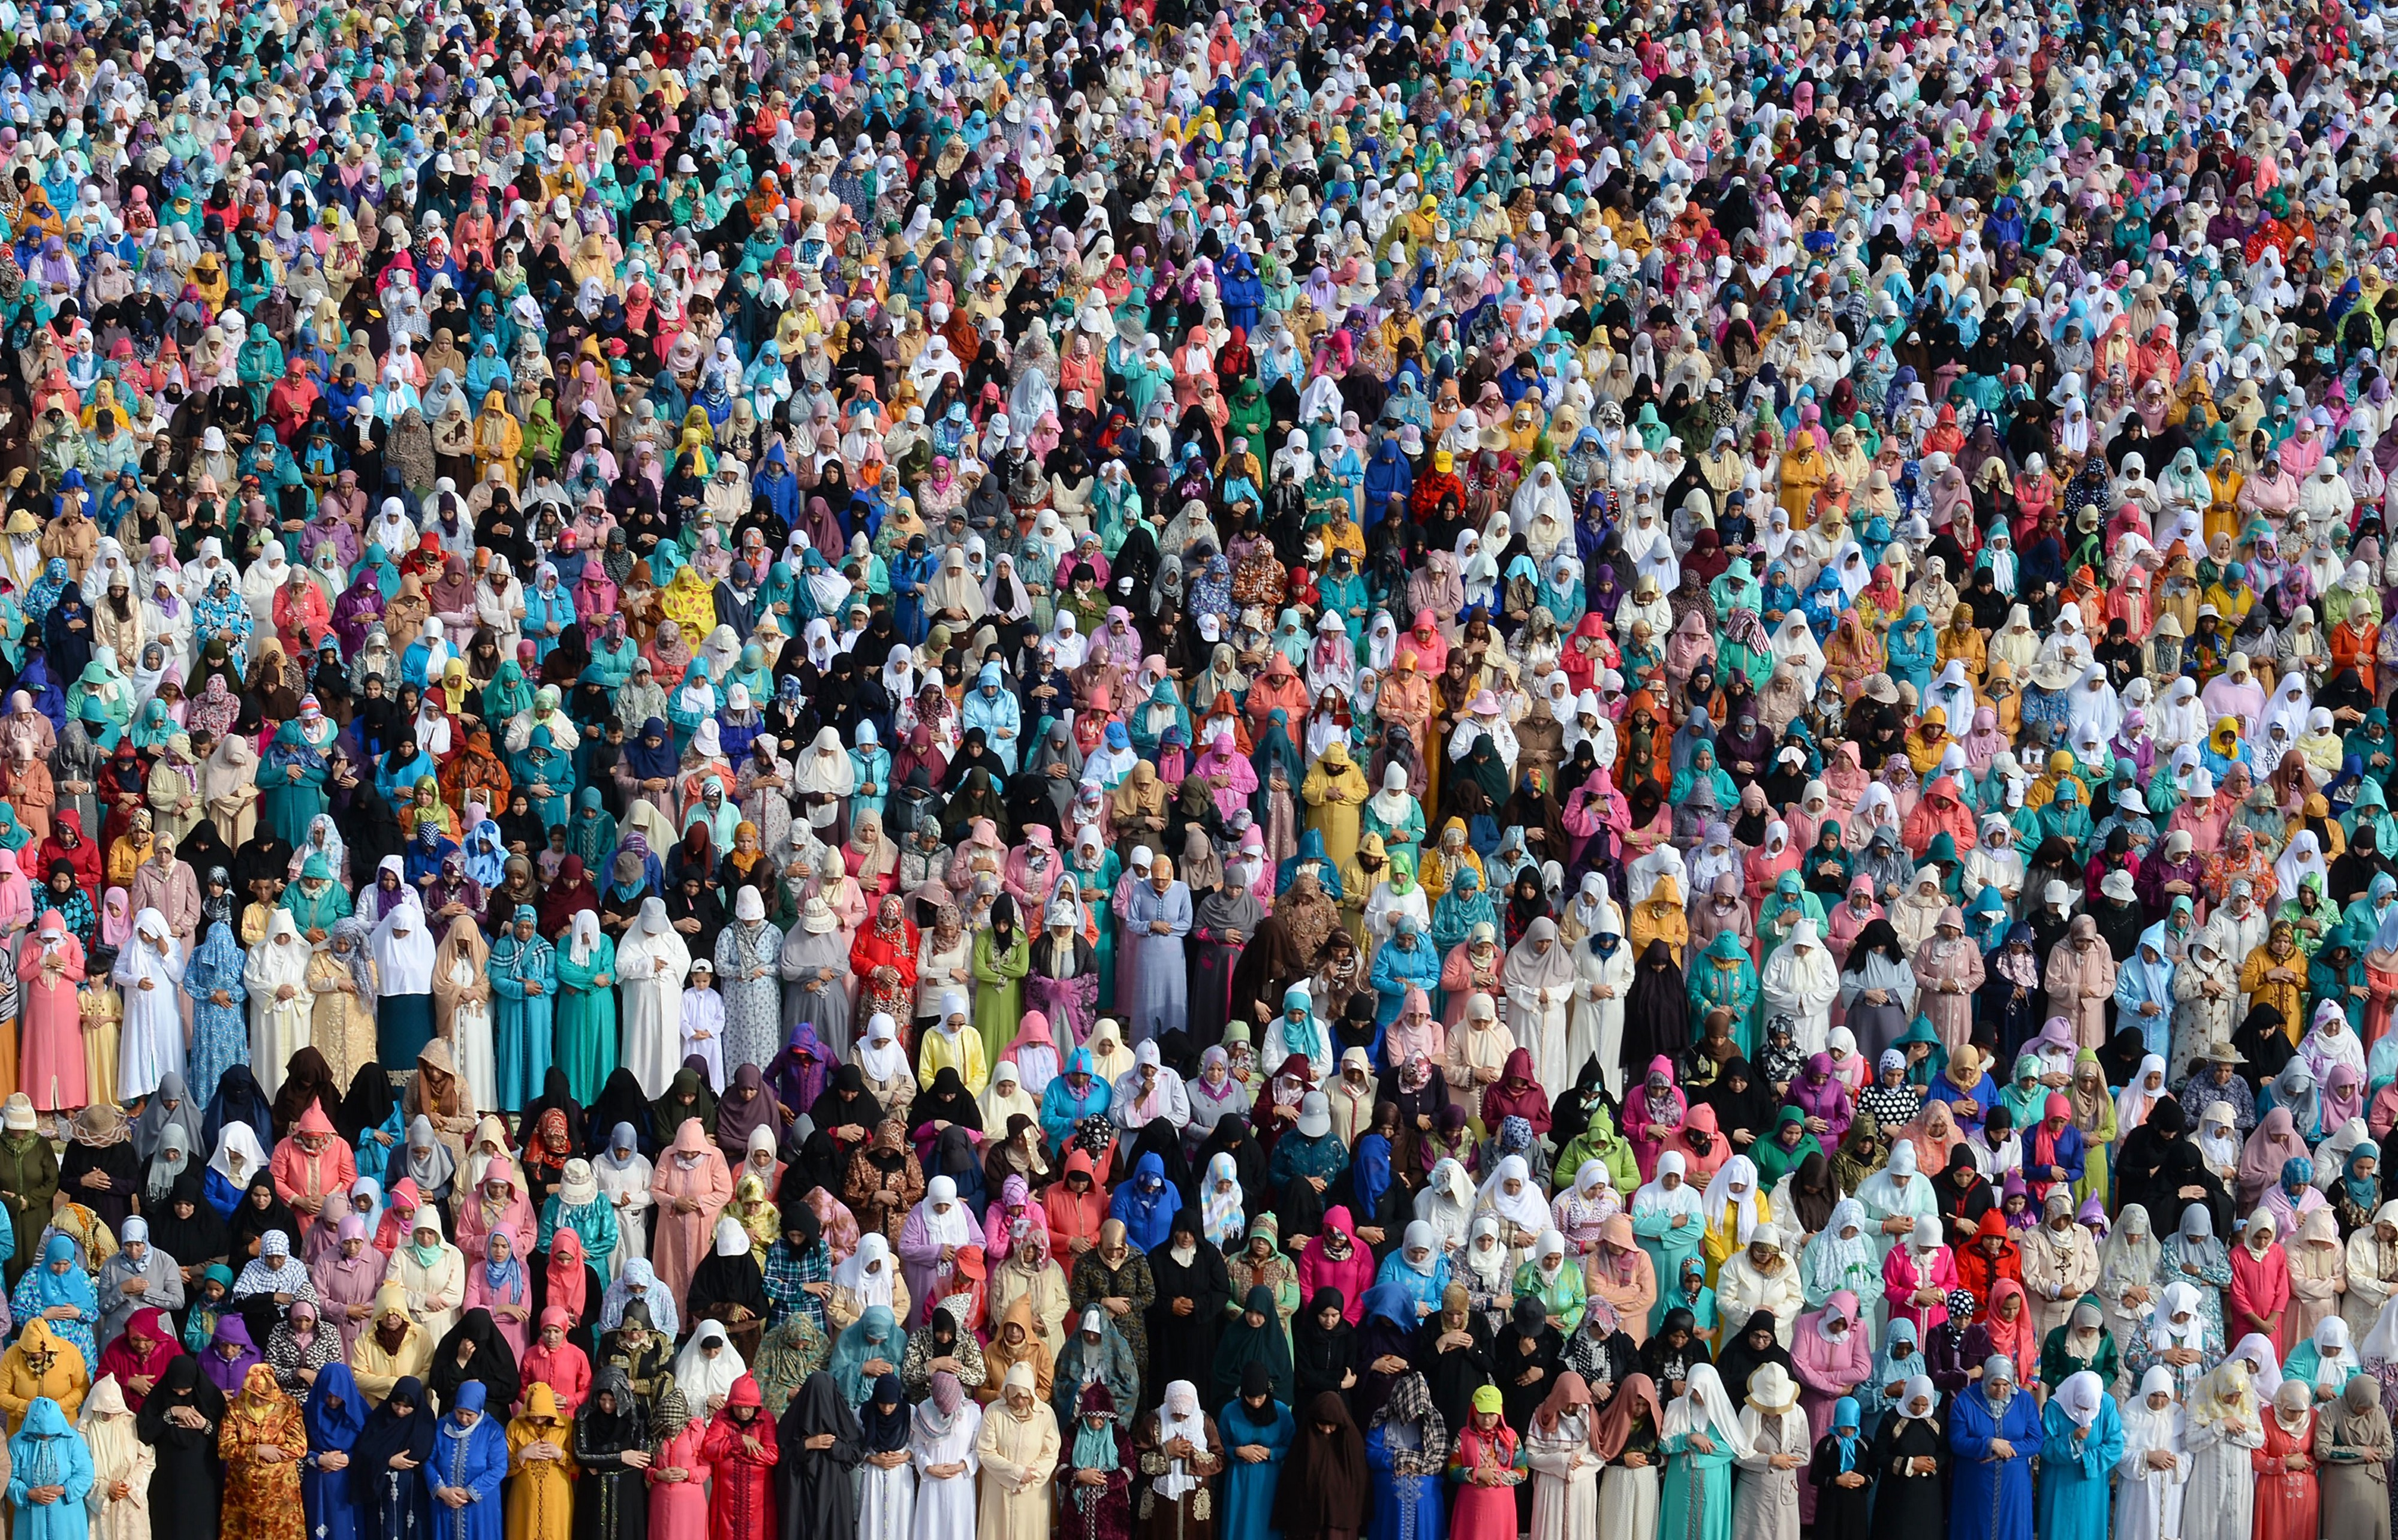 What Does It Mean To Be A Muslim Woman In The Modern World?